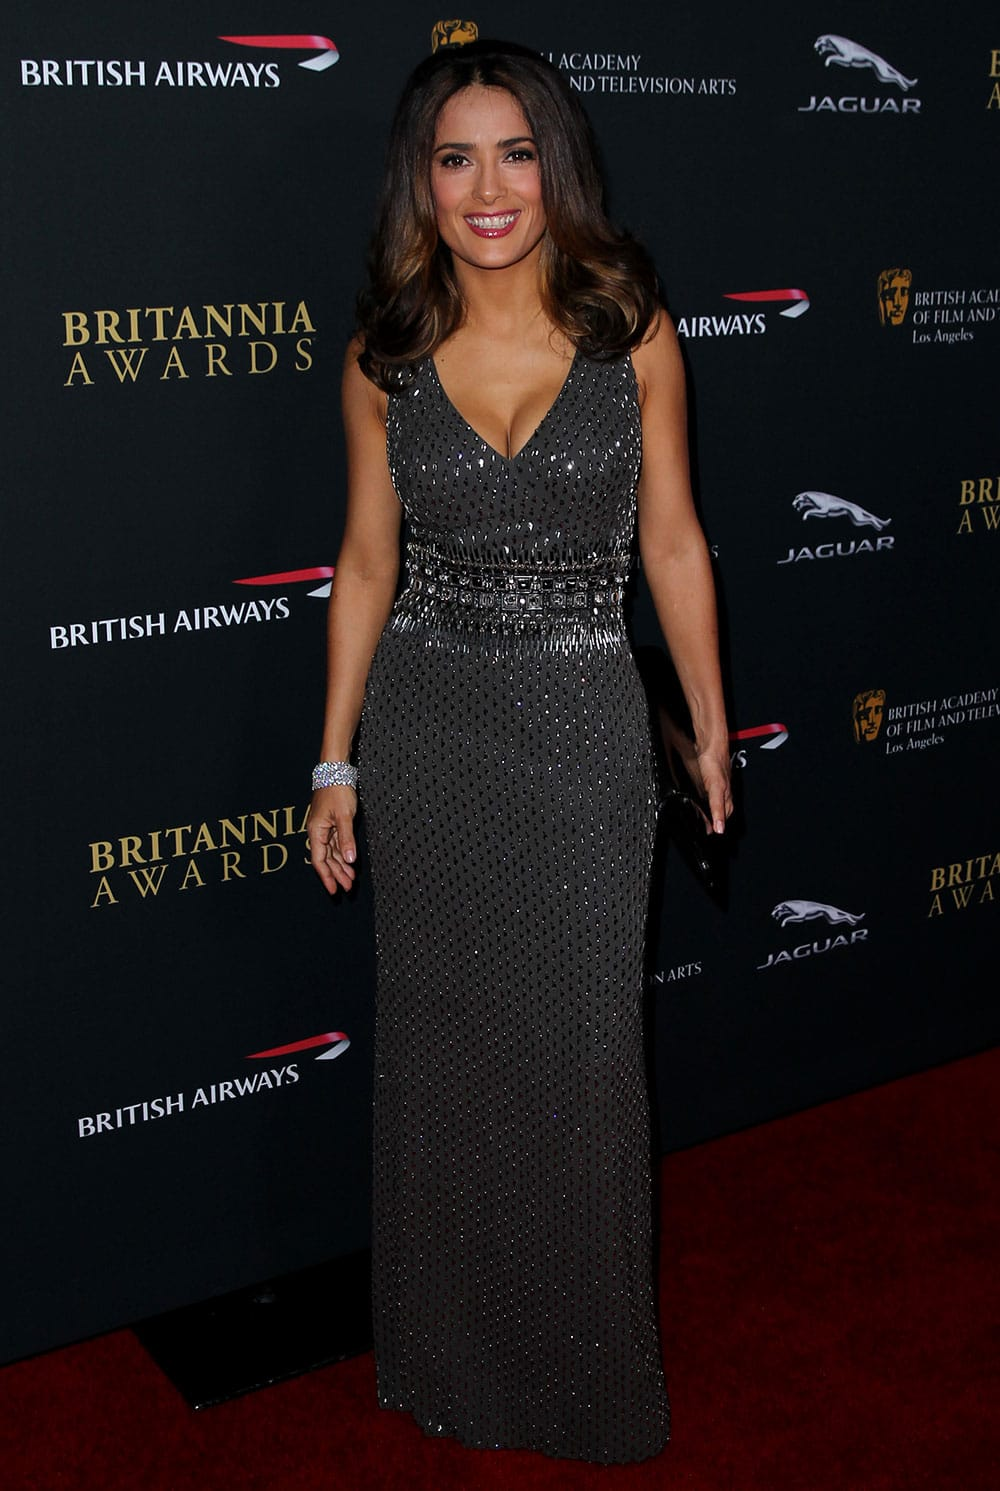 Salma Hayek arrives at the 2013 BAFTA Los Angeles Britannia Awards at the Beverly Hilton Hotel in Beverly Hills, Calif.